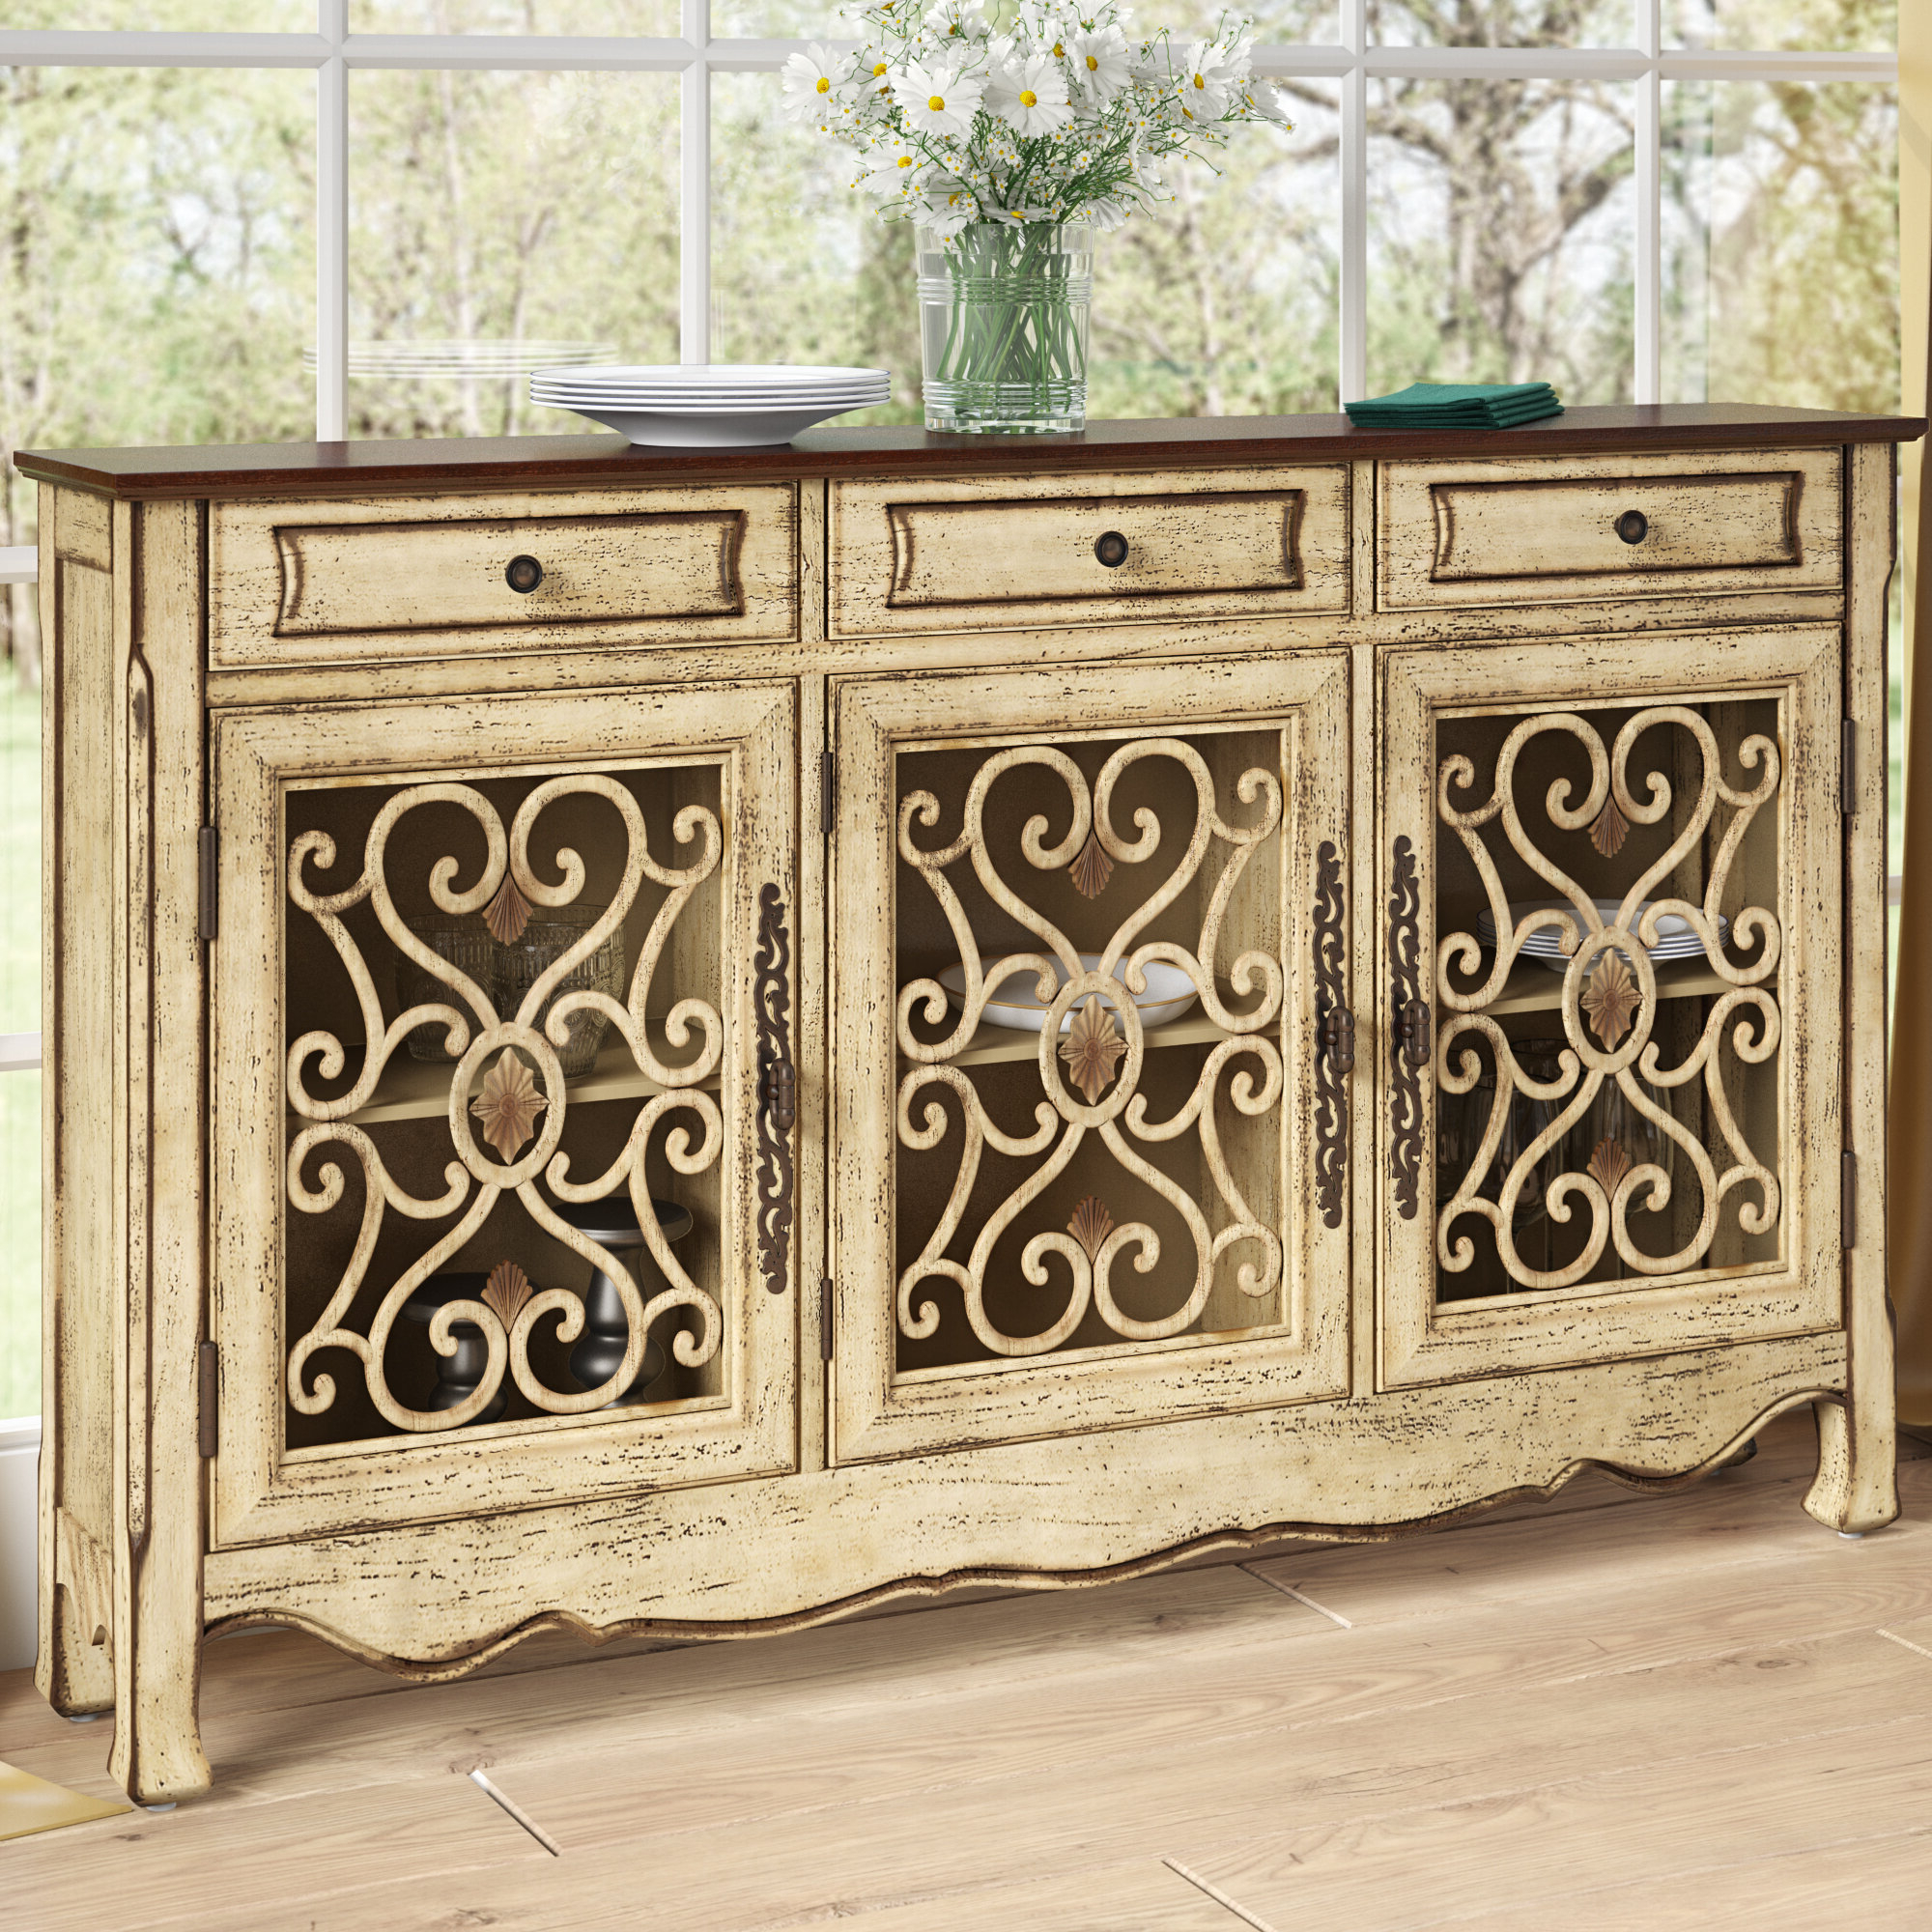 Antique Green Sideboard | Wayfair Inside Knoxville Sideboards (View 13 of 20)